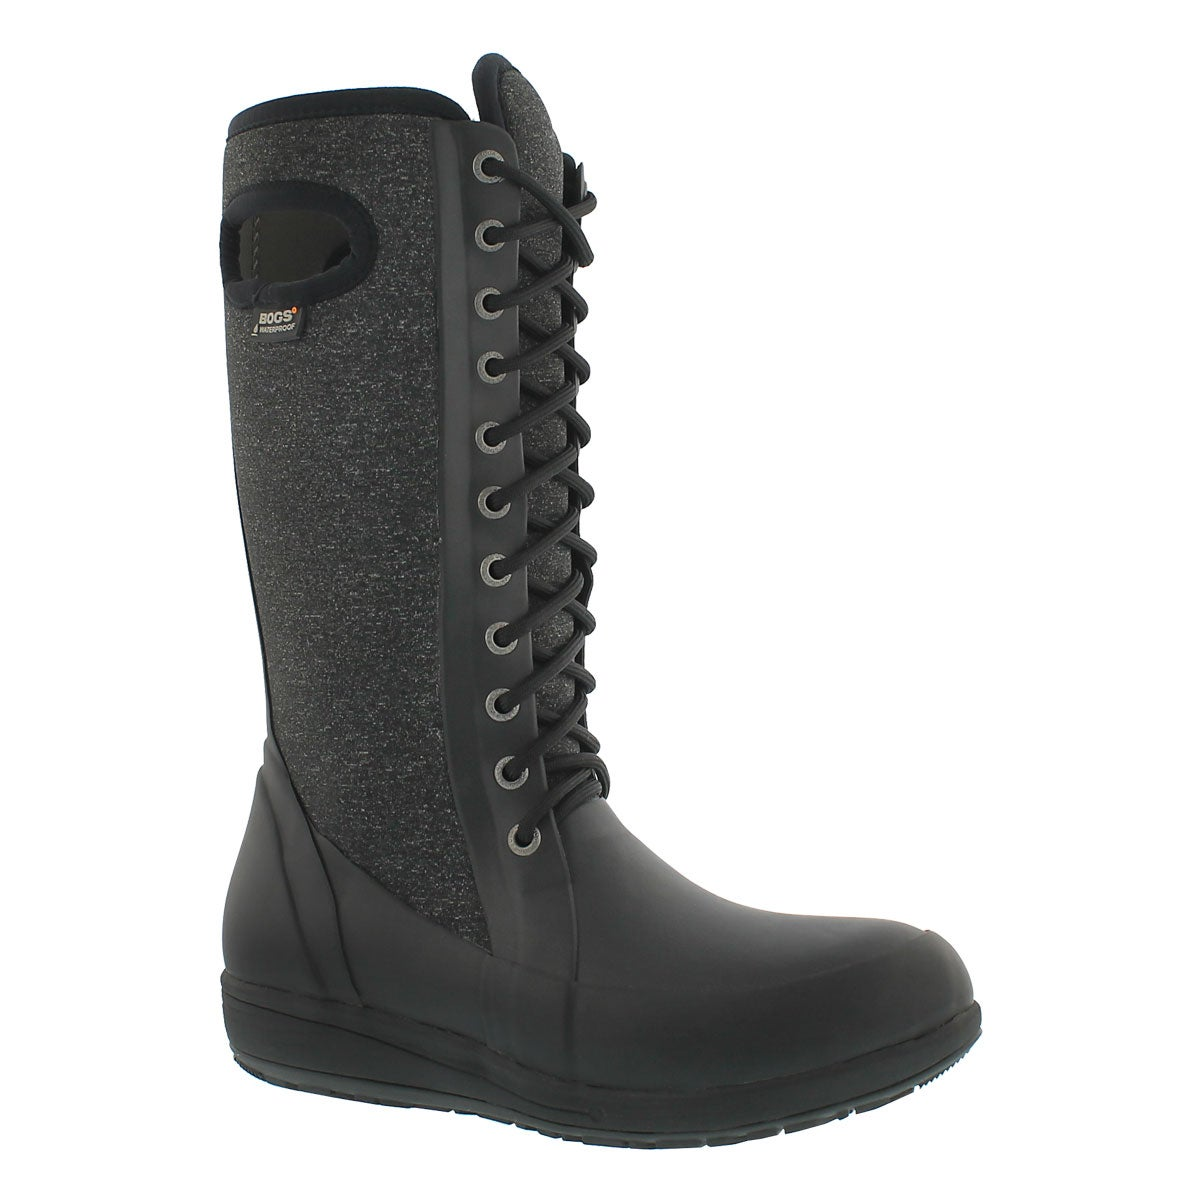 Women's CAMI LACE TALL MELANGE blk/mult wtpf boots